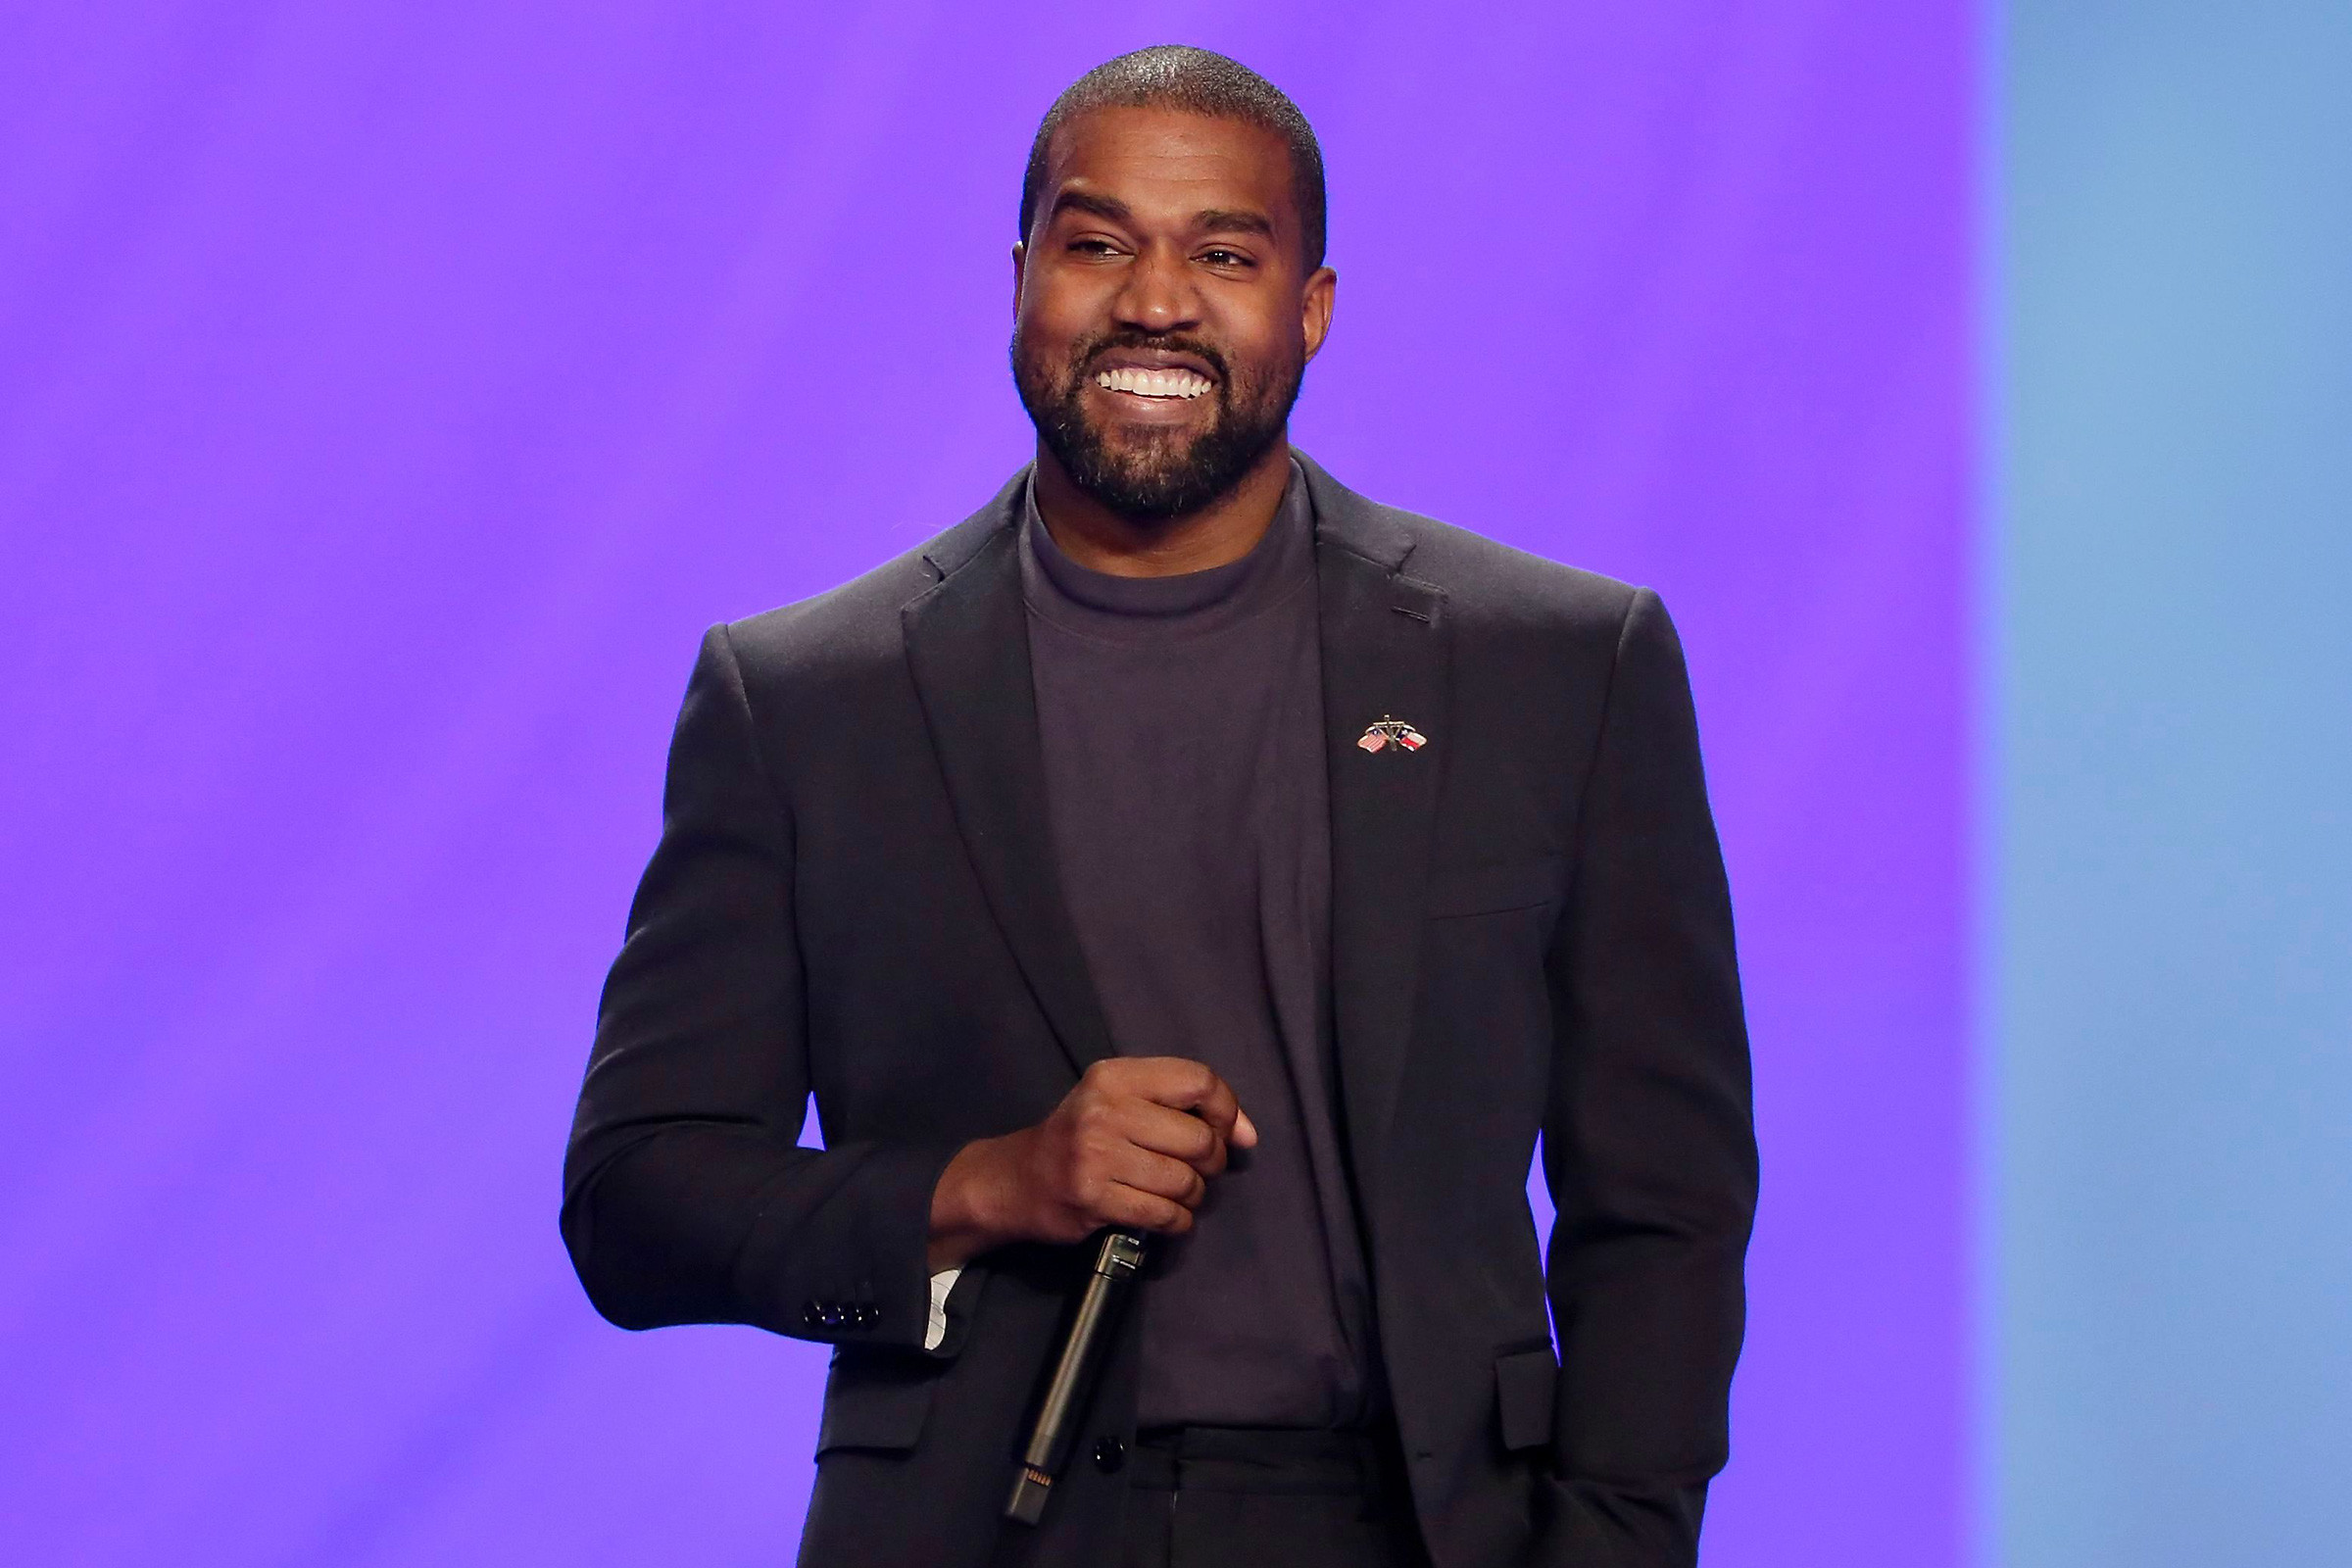 Kanye West tops the list of the World's highest-paid musicians in 2020 after raking in $170M in just one year